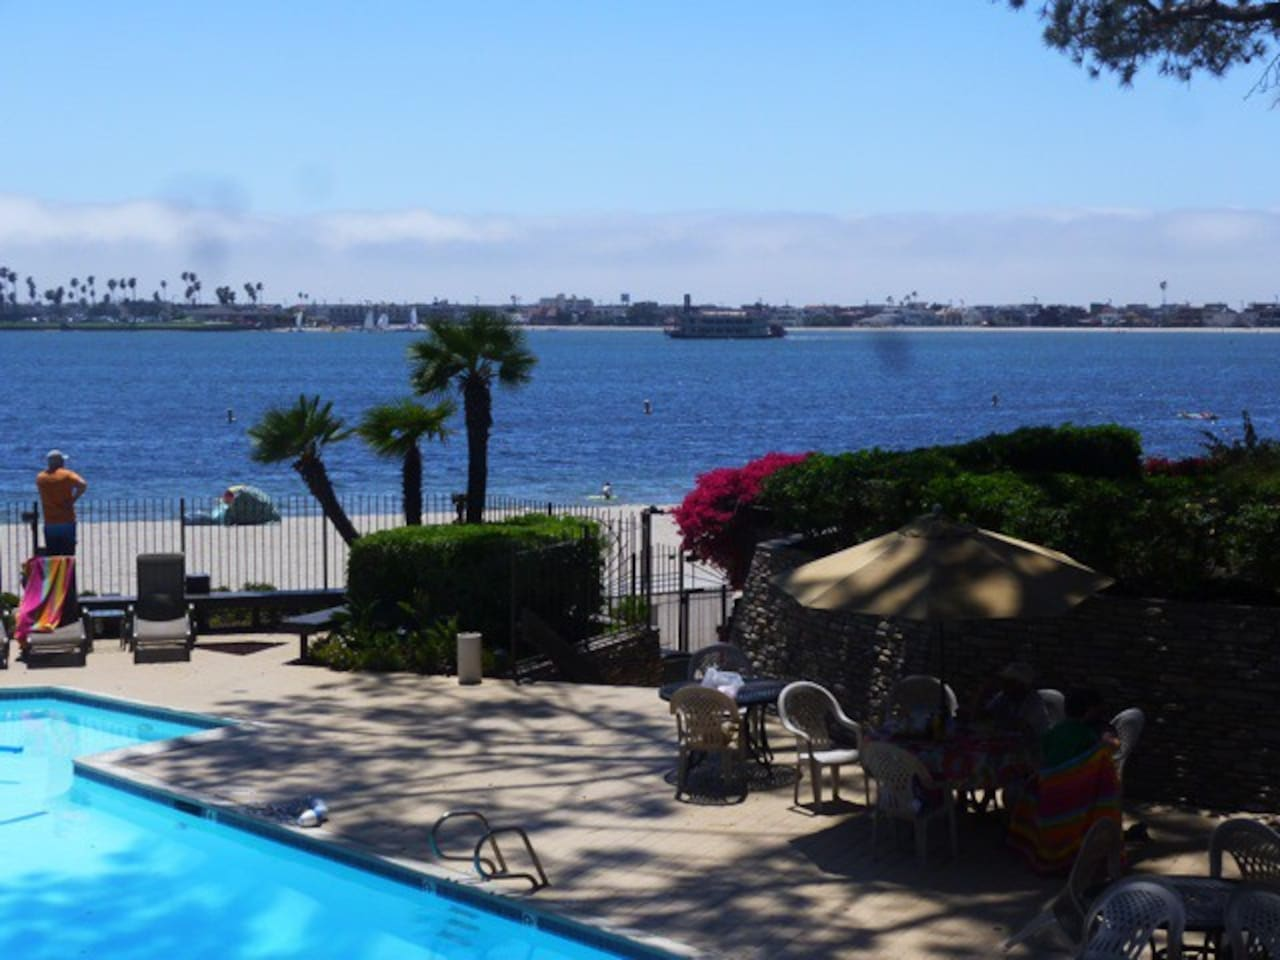 Pool area on bay includes fitness and game rooms, showers and gas BBQ grills